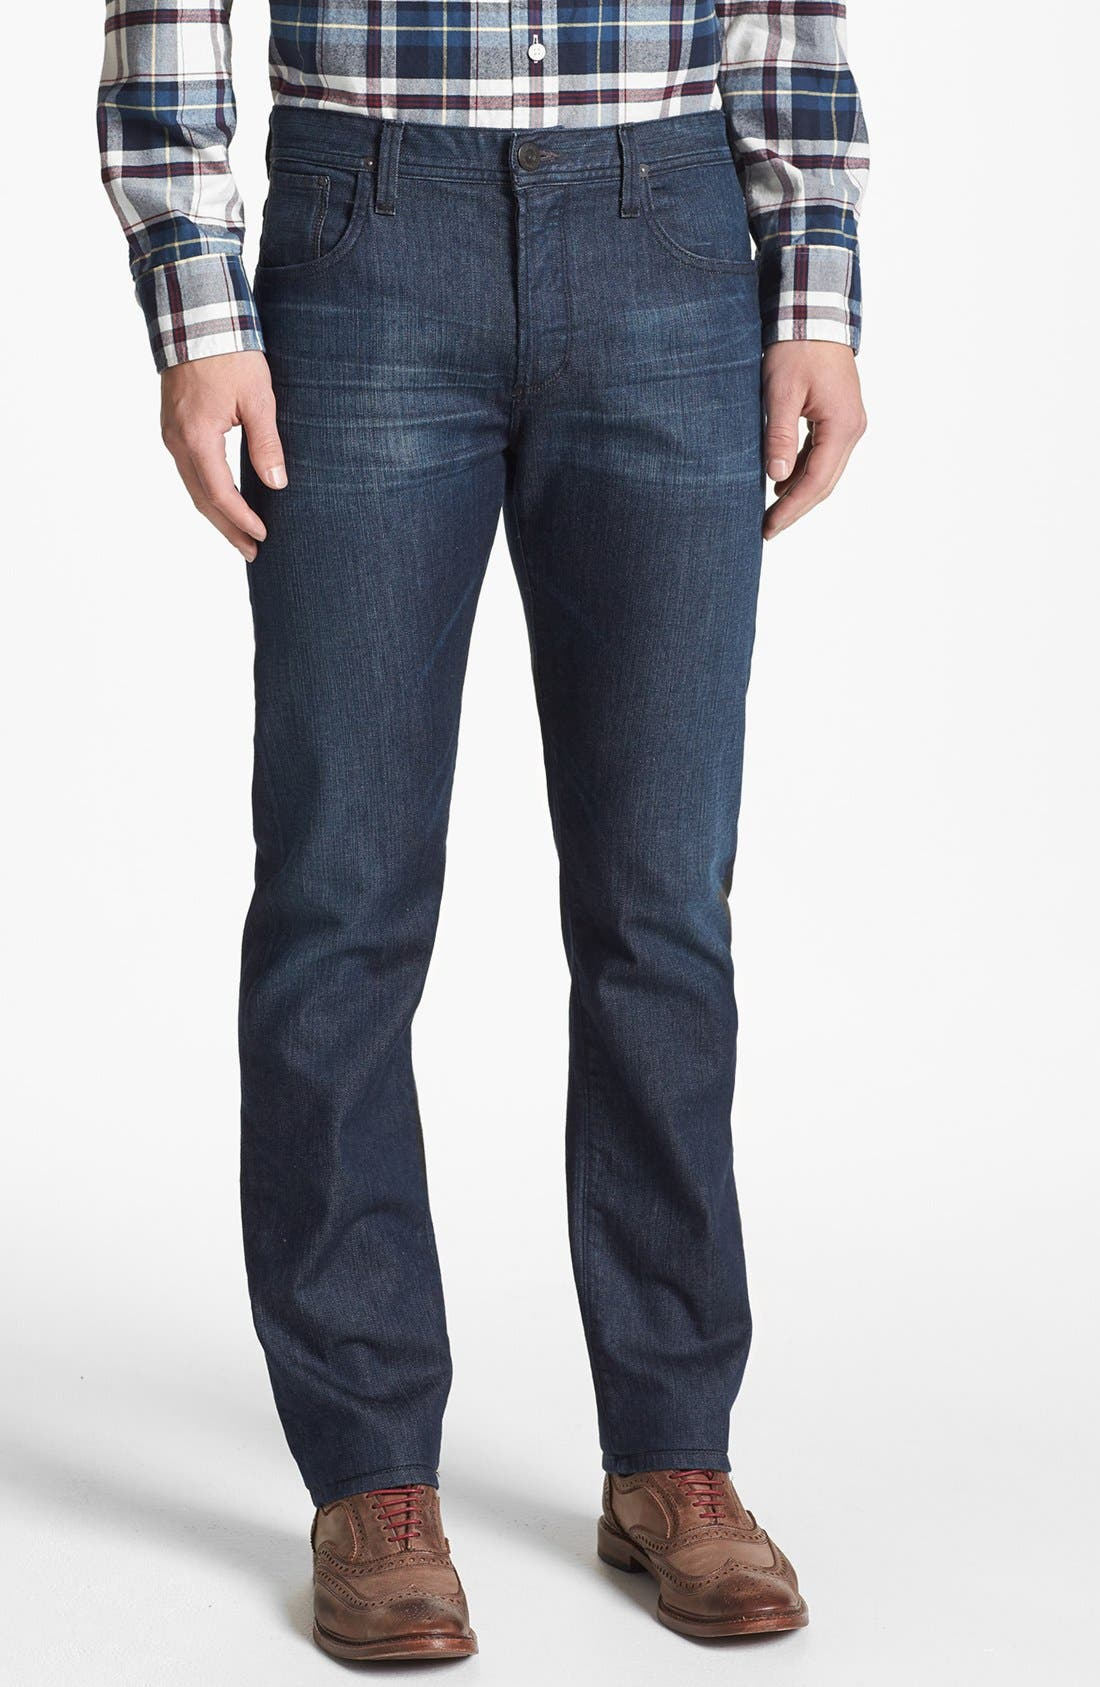 Alternate Image 1 Selected - Citizens of Humanity 'Core' Slim Fit Jeans (Alvin)